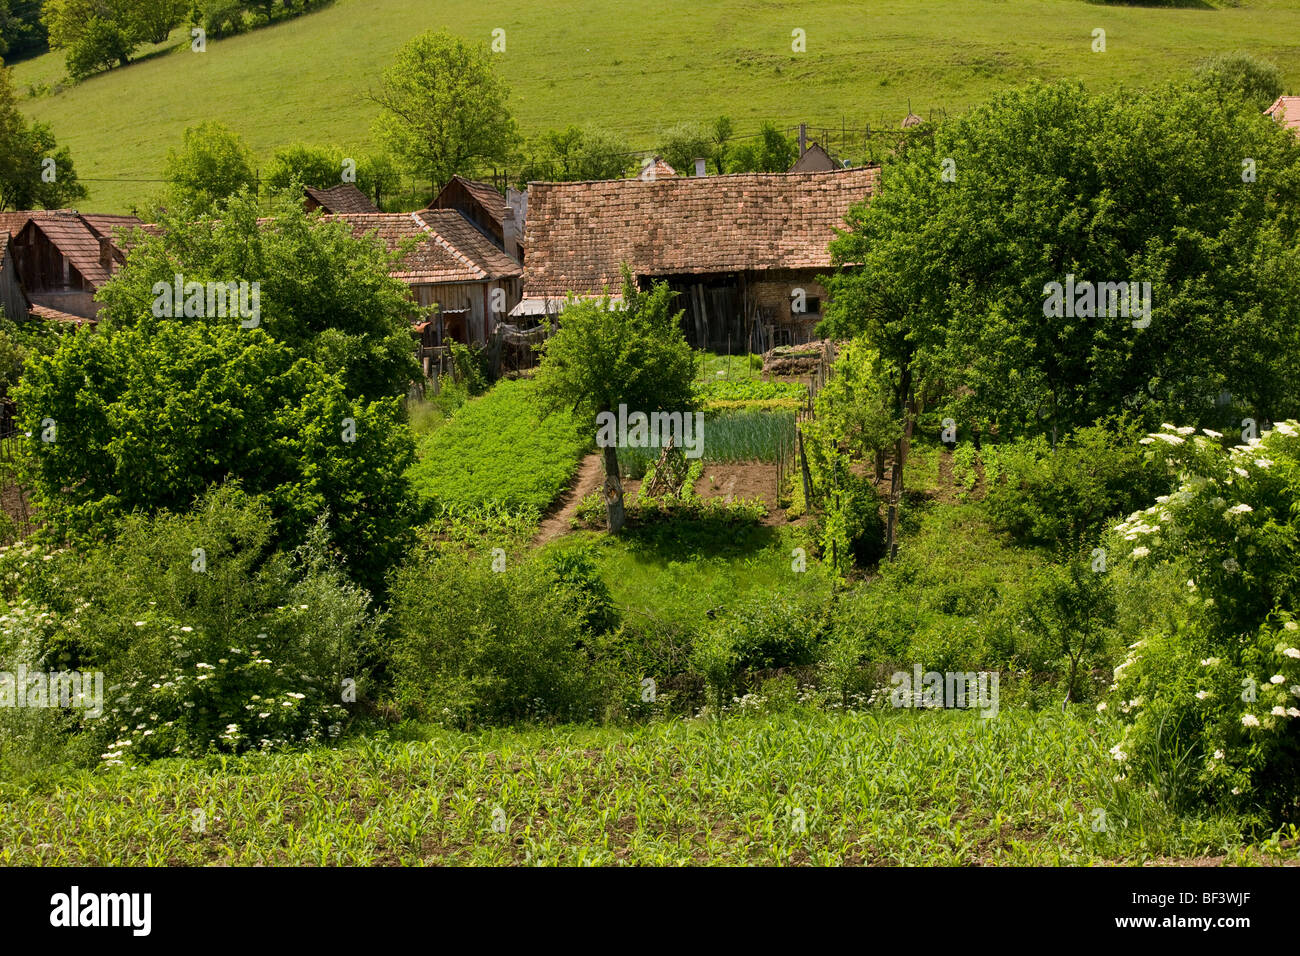 Vegetable gardens and courtyards of Saxon houses in village of Cris, Transylvania. - Stock Image